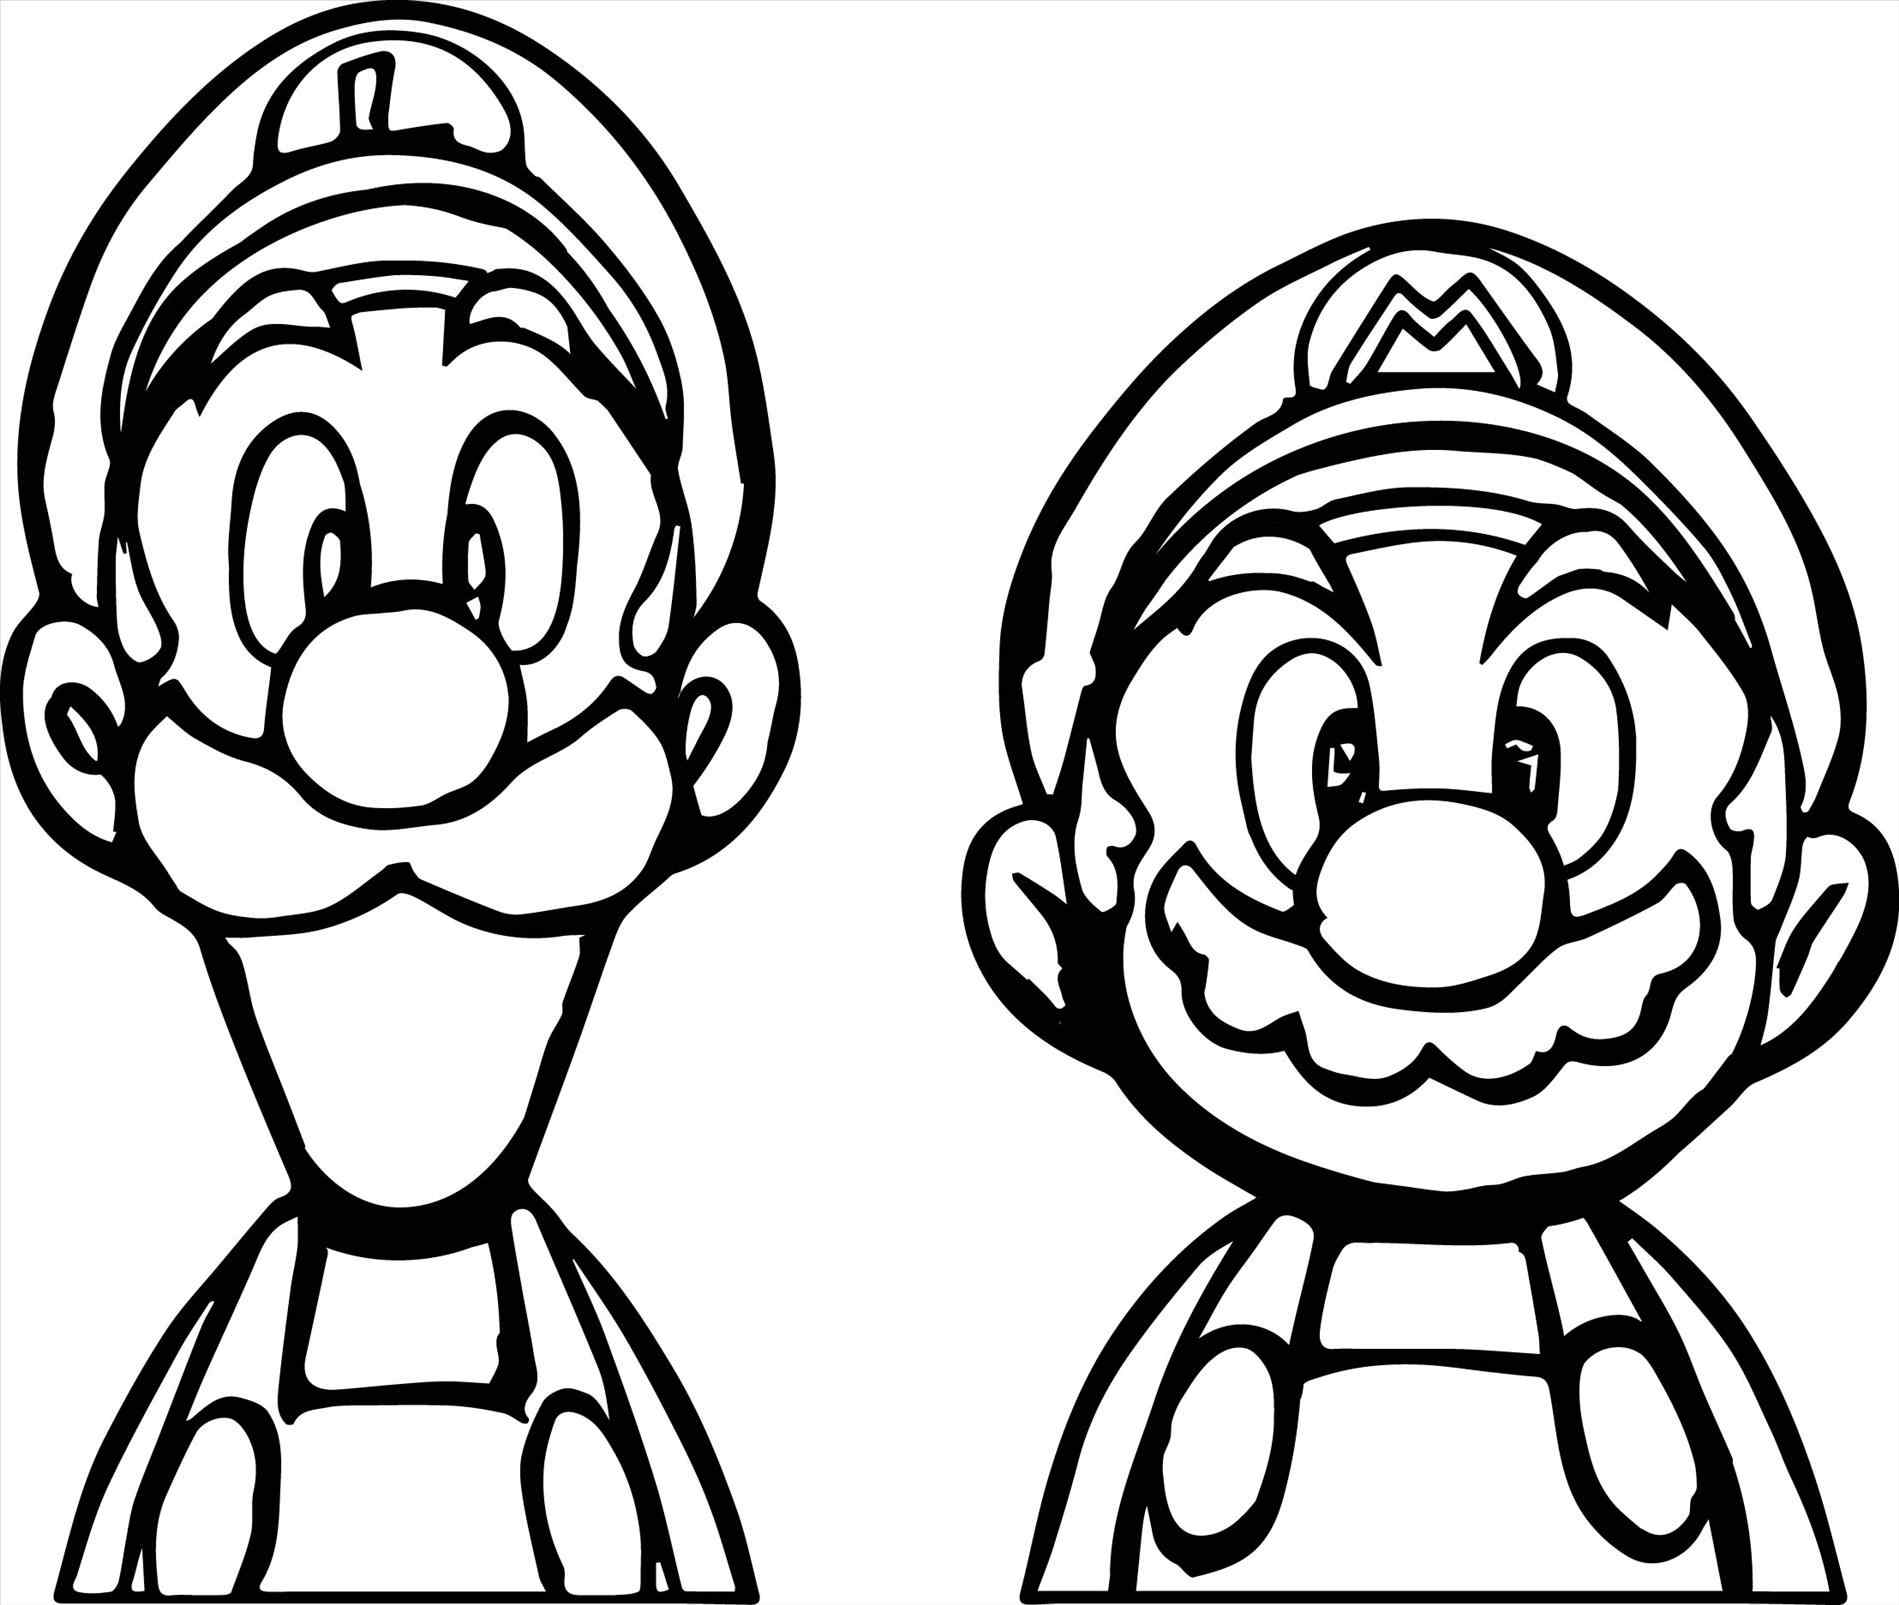 1899x1605 Paper Bowser Coloring Page Online Coloring Printable